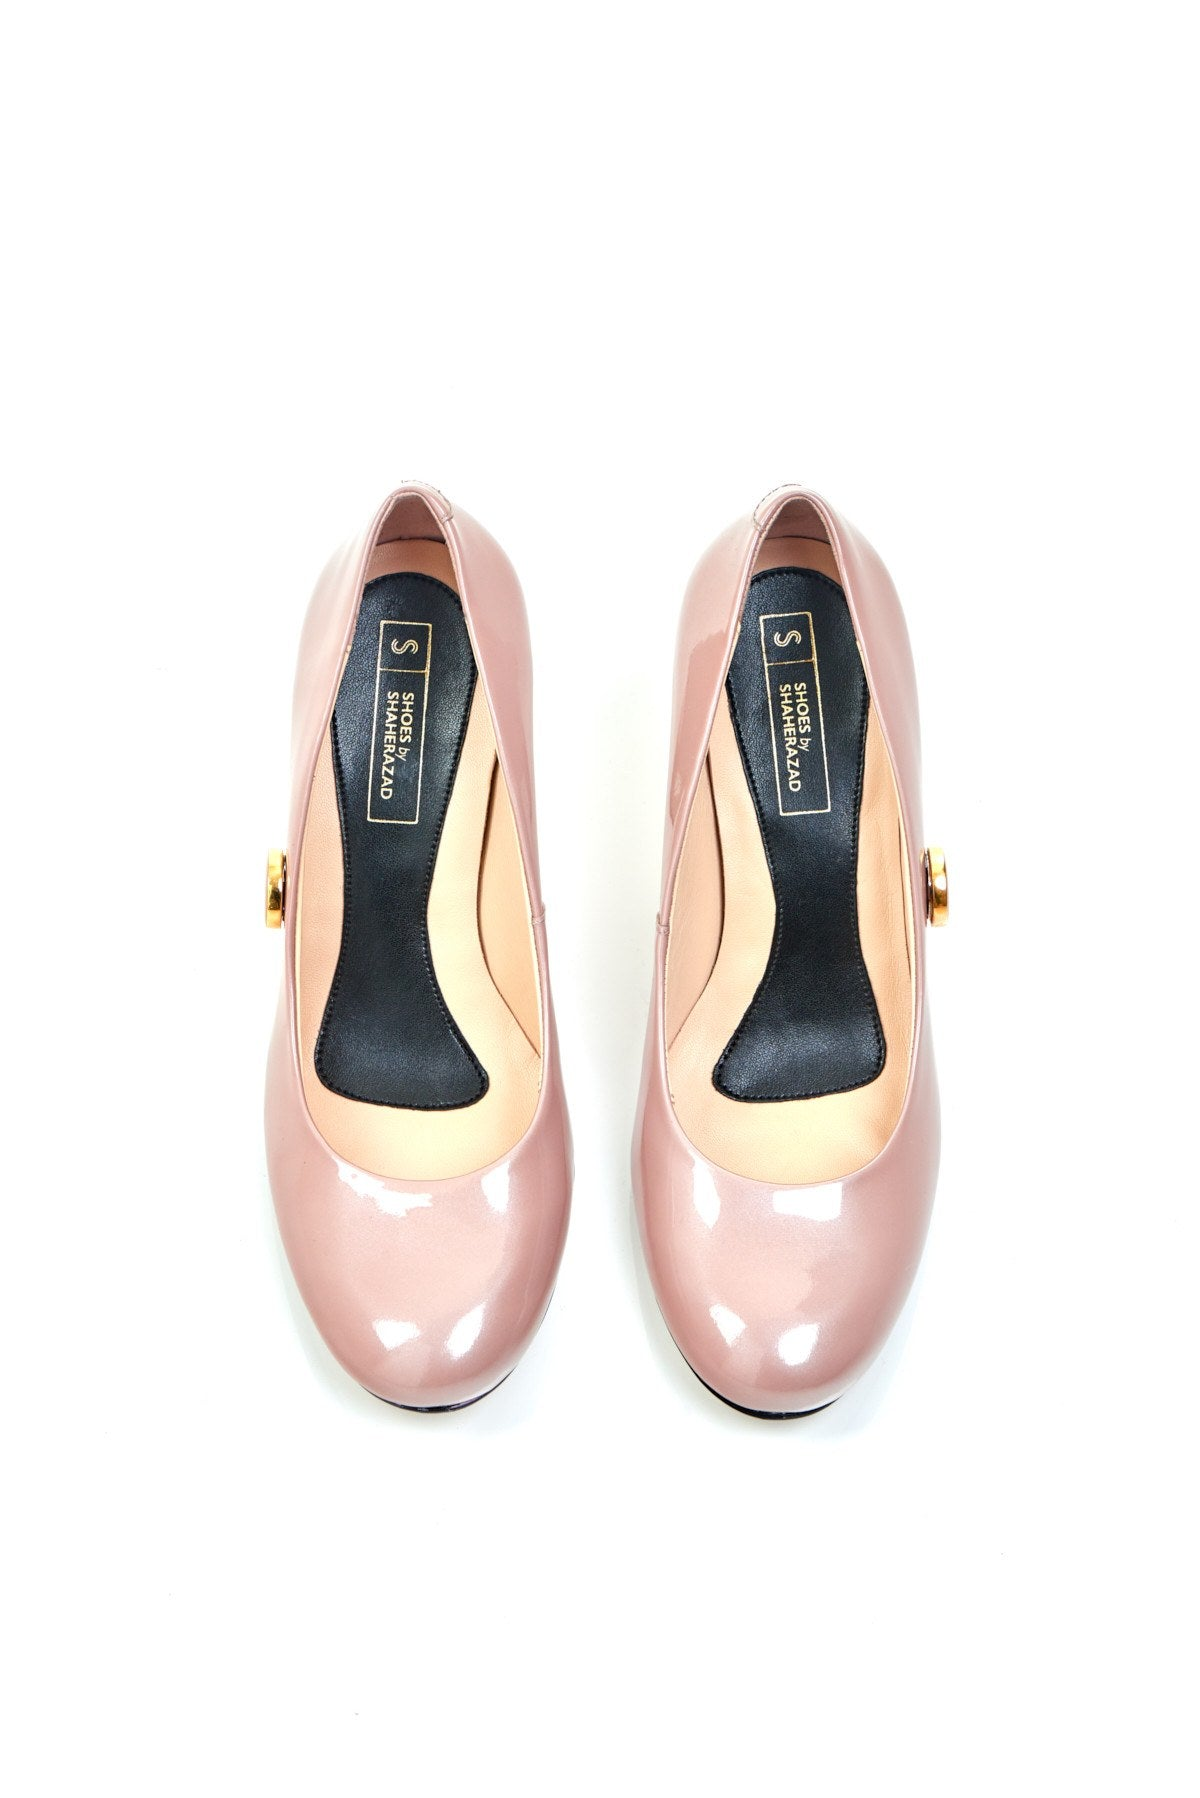 Follow your Butterflies in Blush - Shoes by Shaherazad